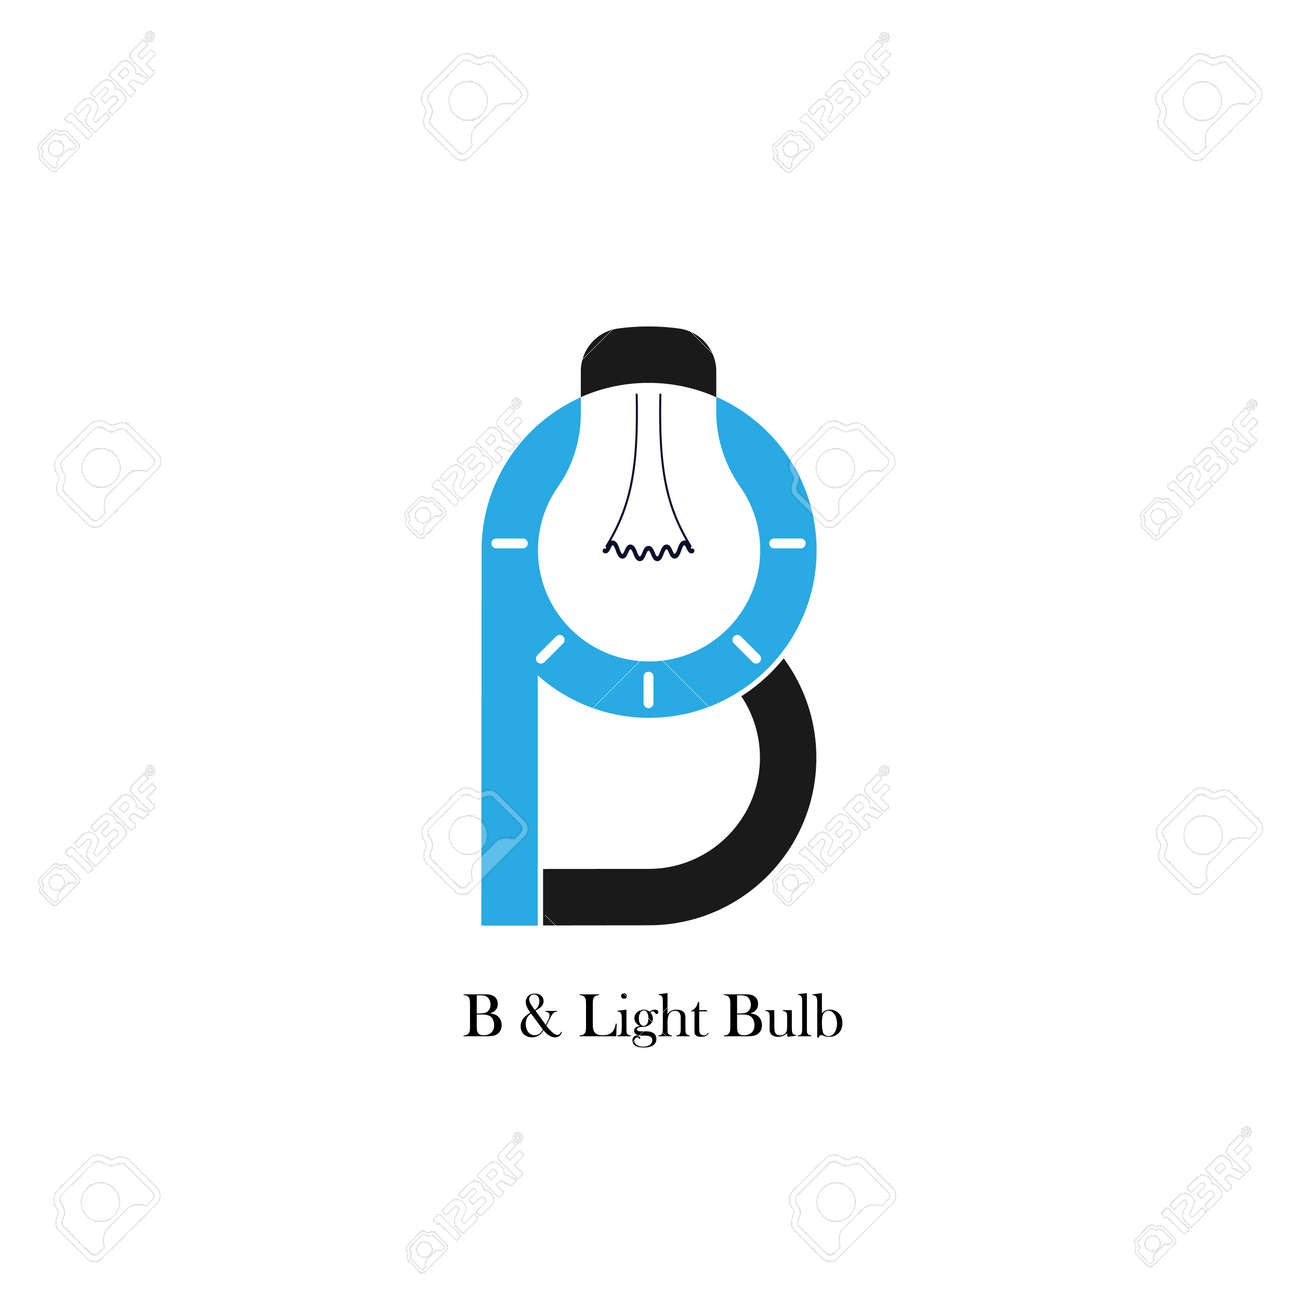 B Letter Alphabet Icon And Light Bulb Abstract Logo Design Vector Royalty Free Cliparts Vectors And Stock Illustration Image 69007807